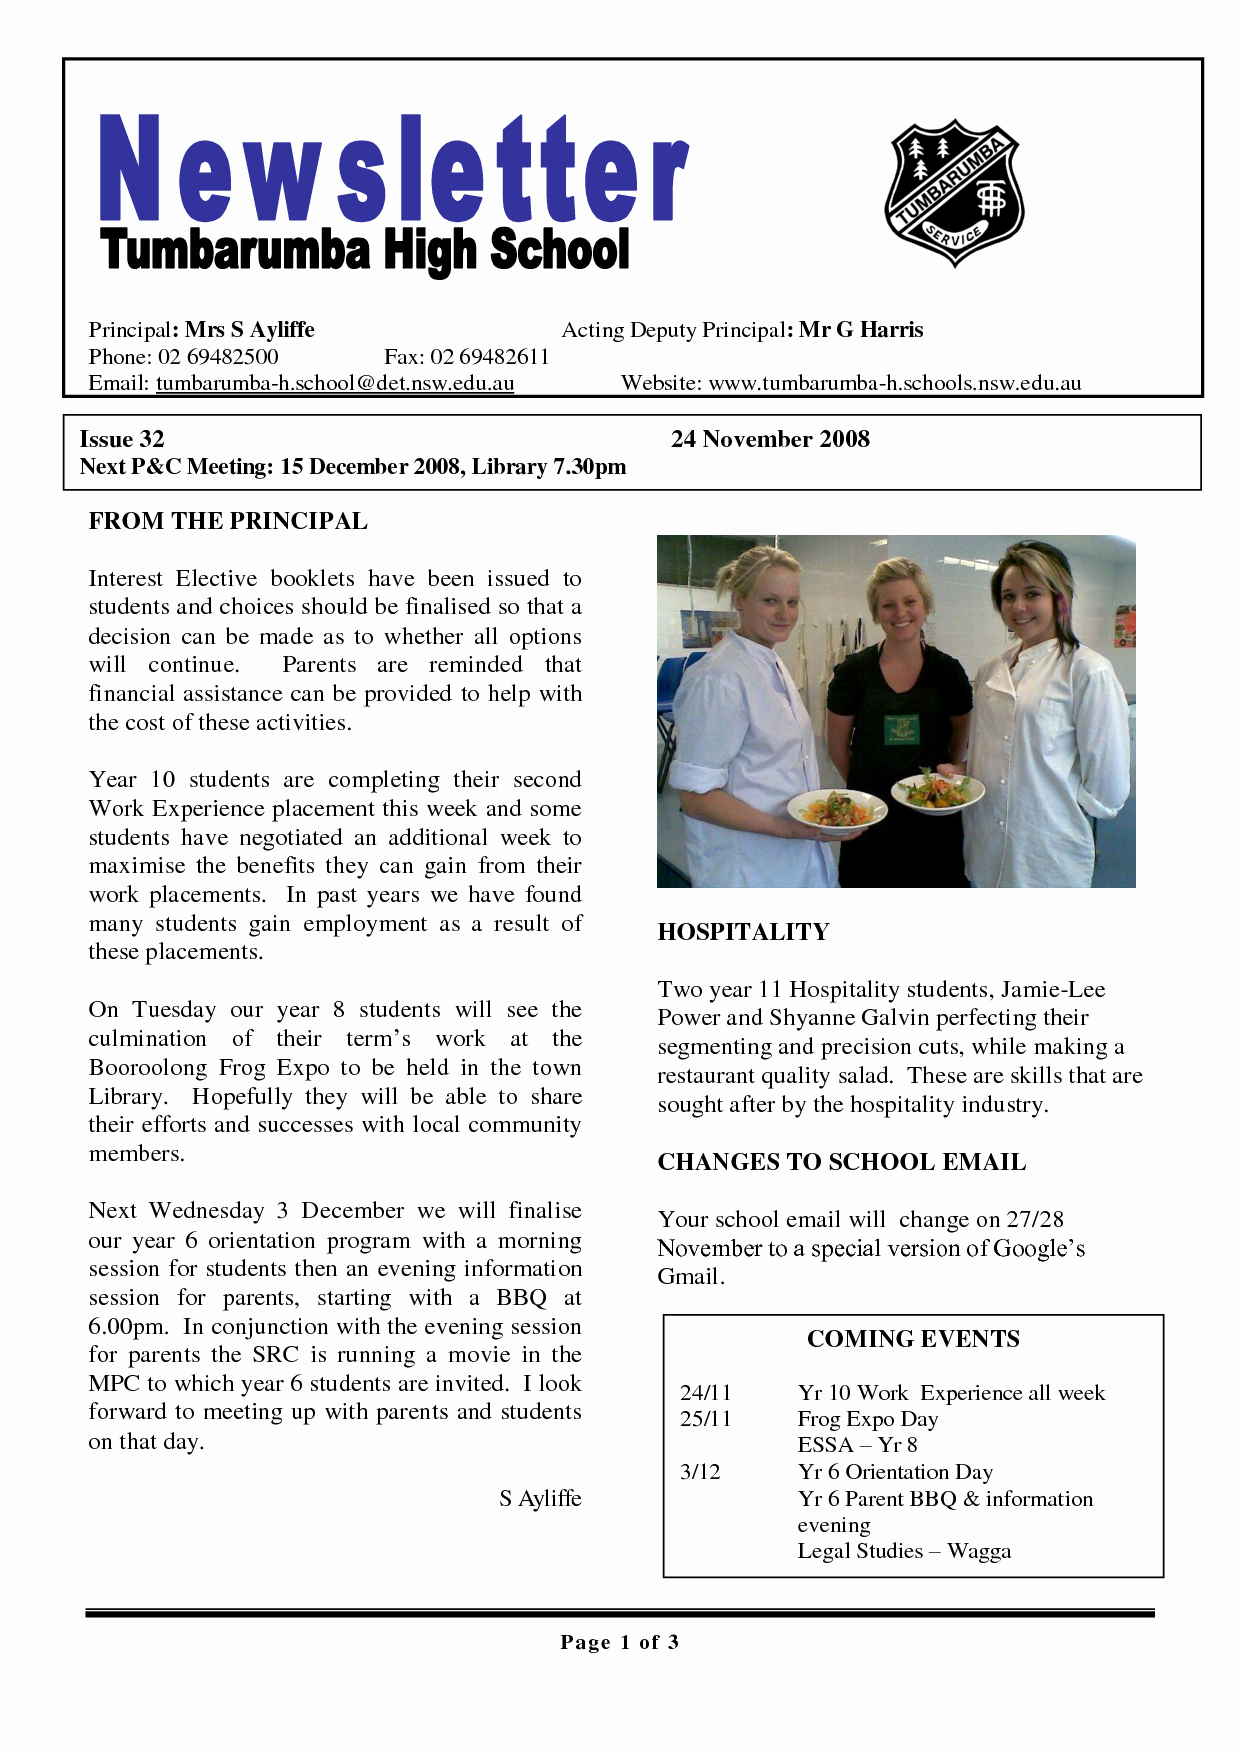 Elementary School Newsletter Template Awesome 17 Awesome High School Newsletter Templates Images